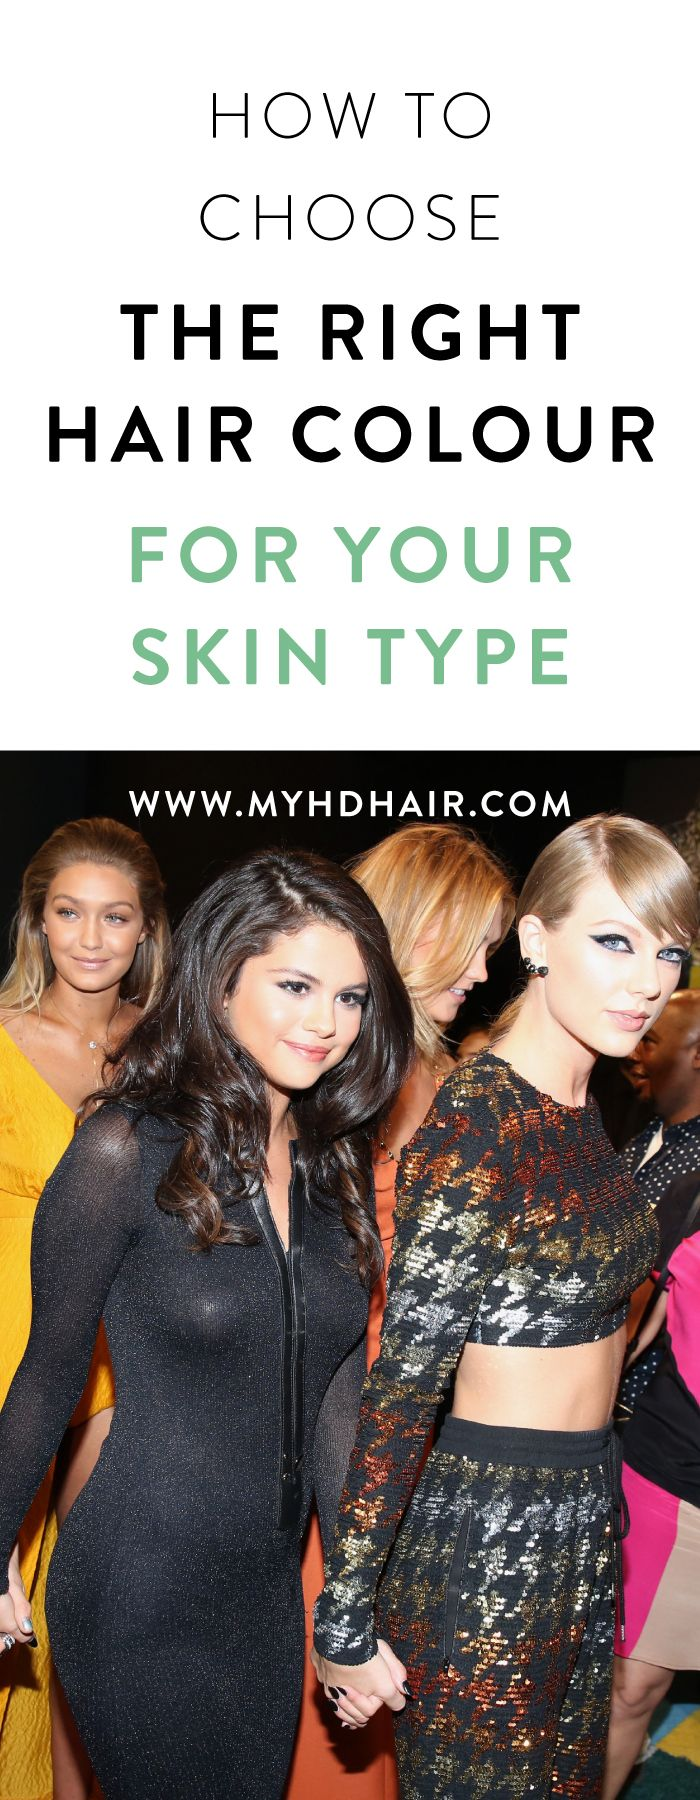 How To Choose The Right Hair Colour For Your Skin Tone Hair 101